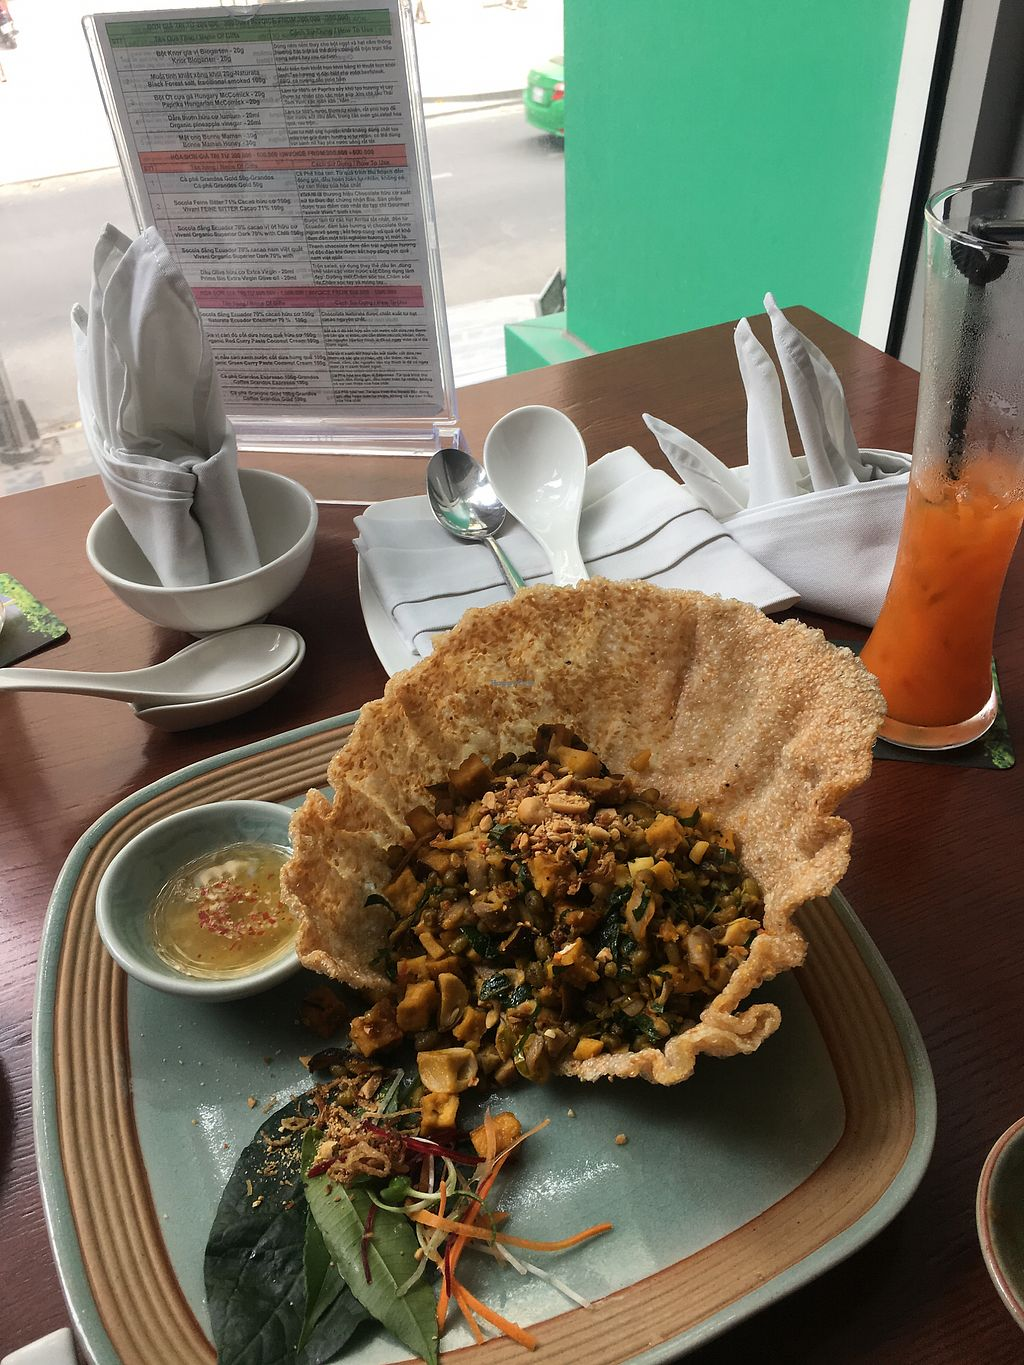 """Photo of Biogarten Restaurant  by <a href=""""/members/profile/LauraZr"""">LauraZr</a> <br/>Yums <br/> September 10, 2017  - <a href='/contact/abuse/image/81896/302848'>Report</a>"""